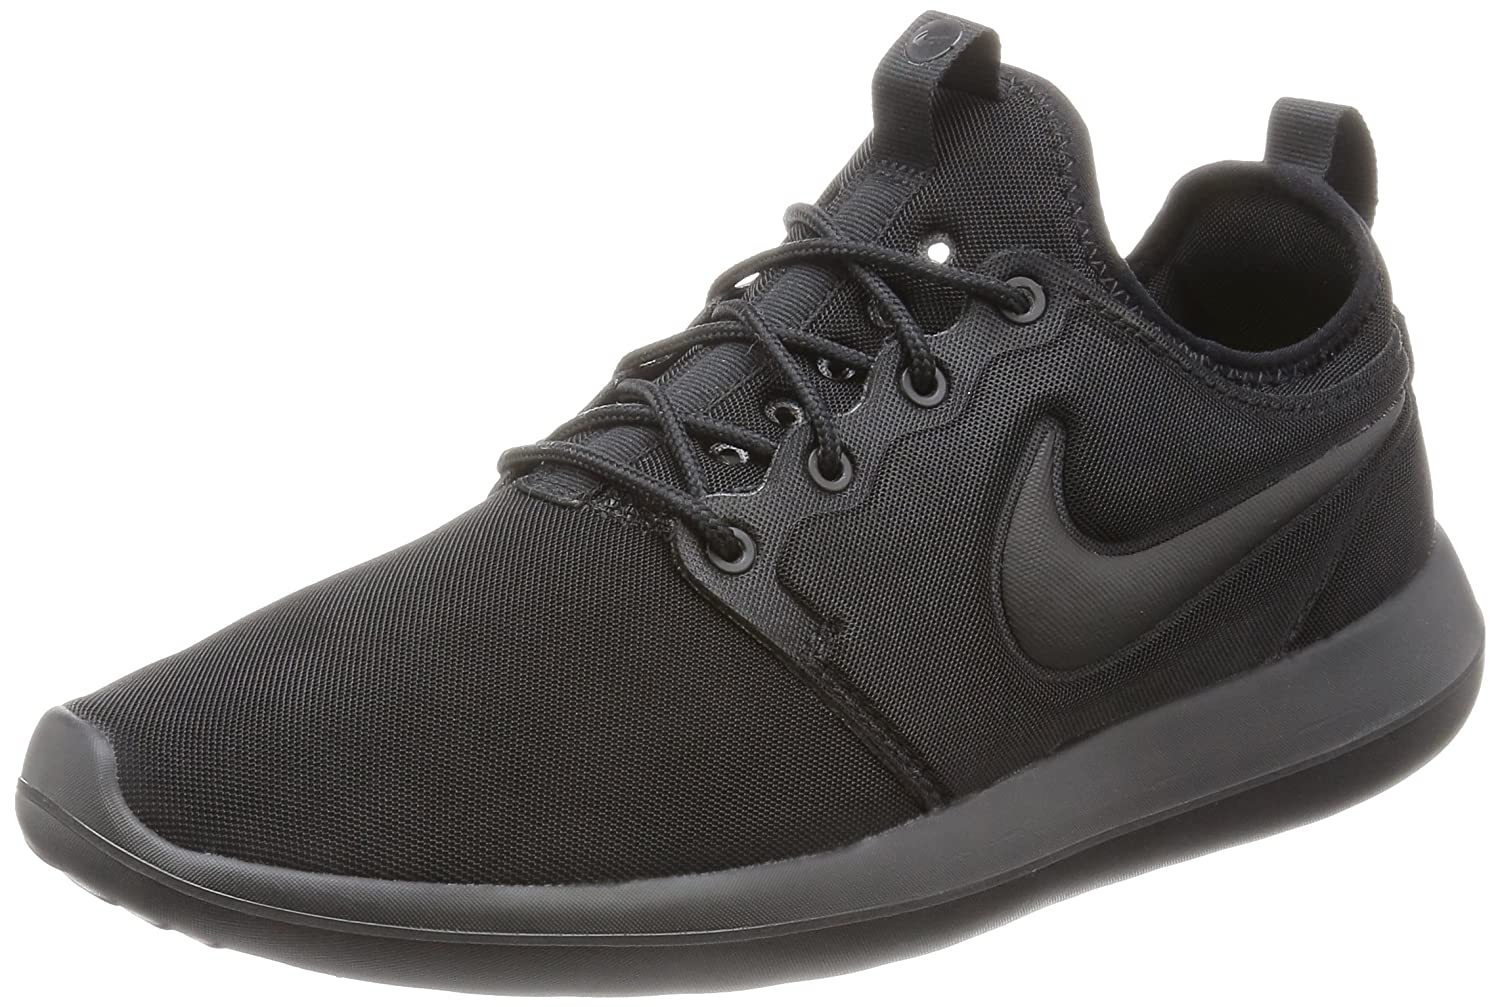 bea5d5abcec1 Nike Roshe Two